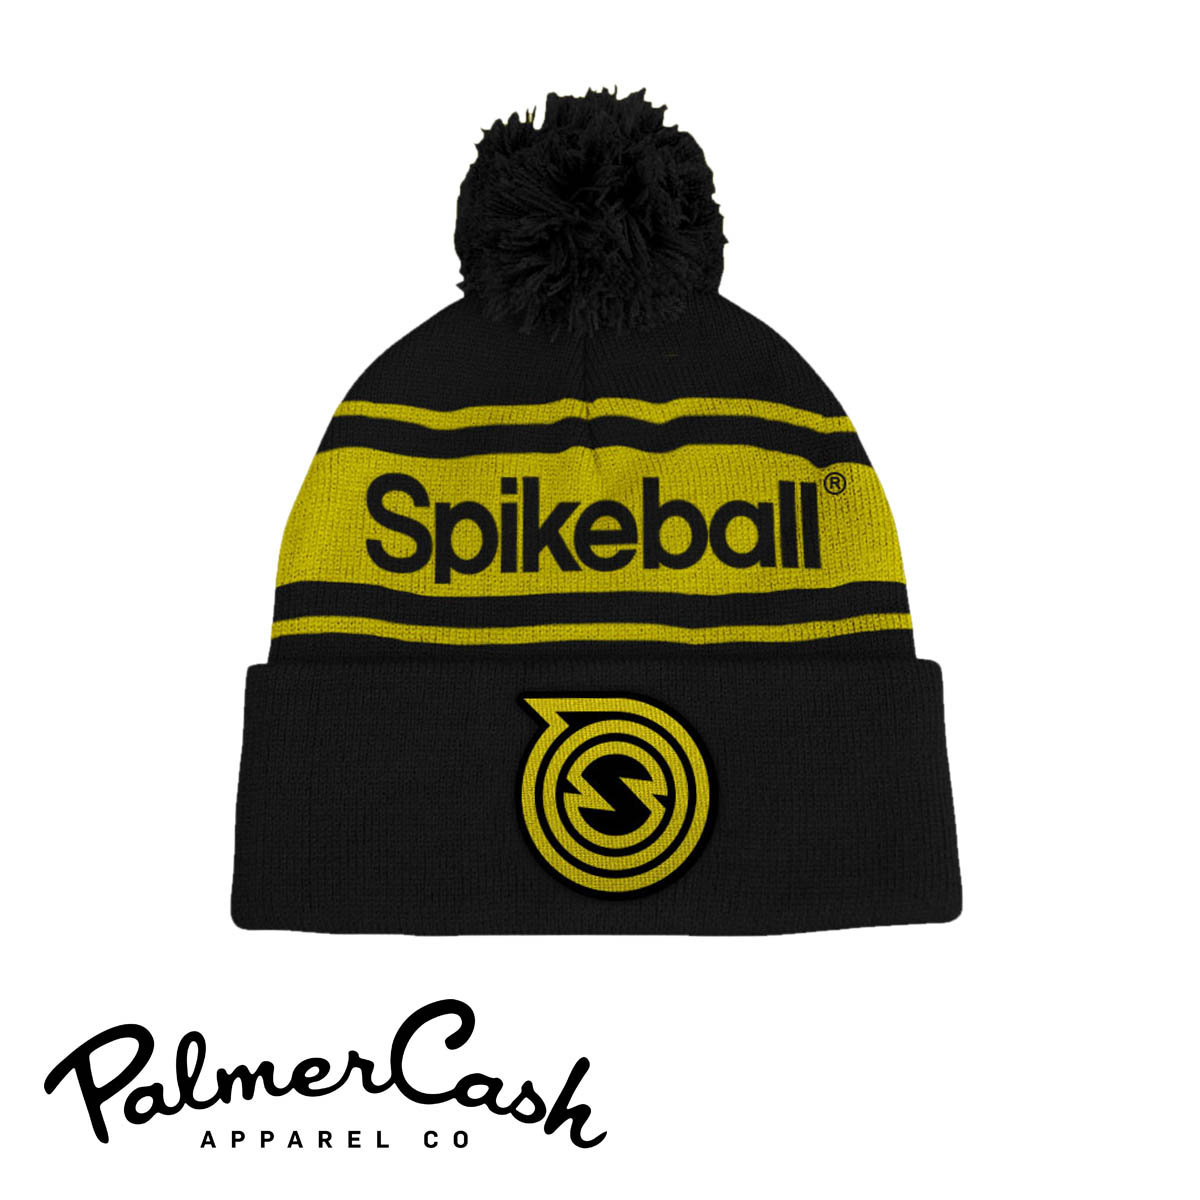 PC_Hat_Spikeball_Logo_Web.jpg